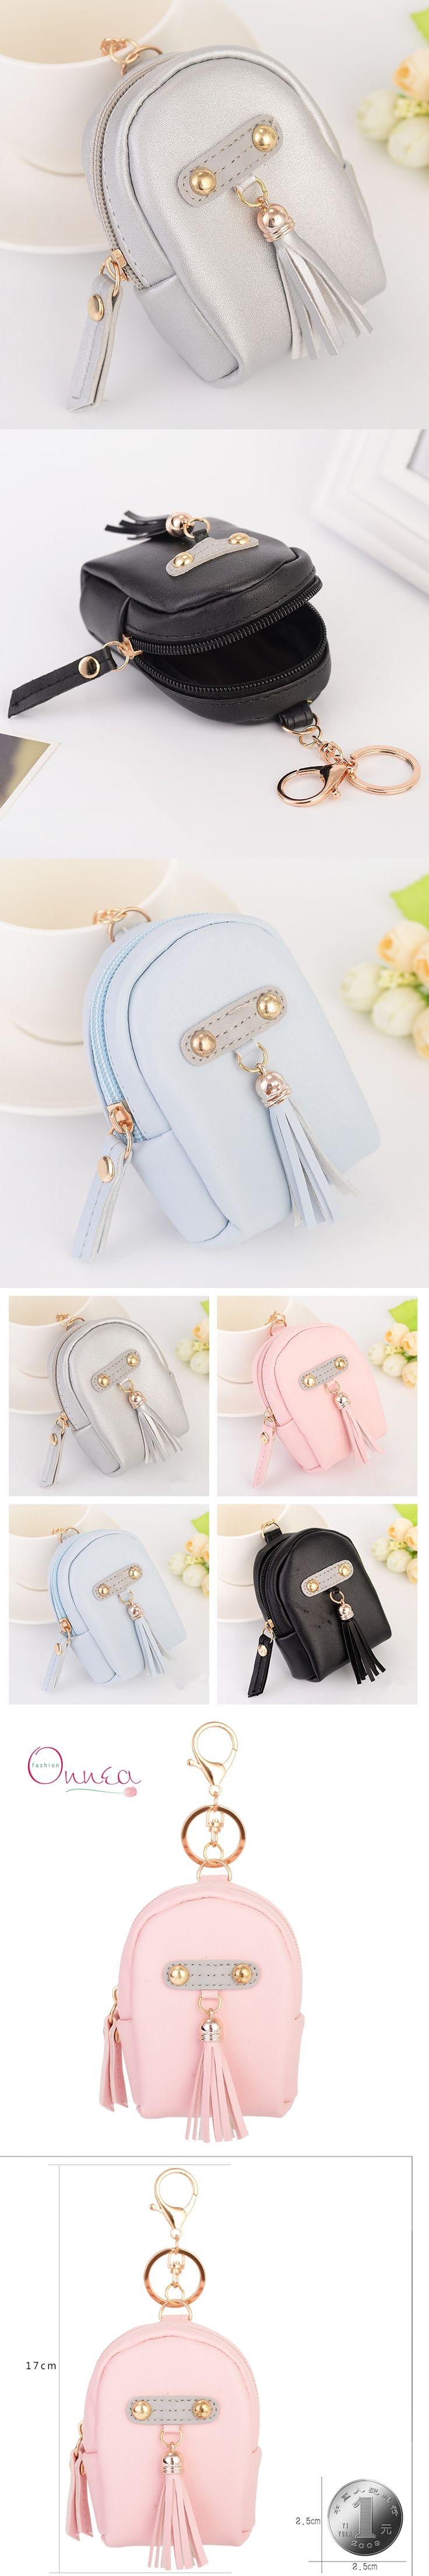 Onnea Fashion Women Mini Bags Tassel Keychain PU Leather Backpack Coin Wallet Handbag Charms key chains Car keychain Accessories